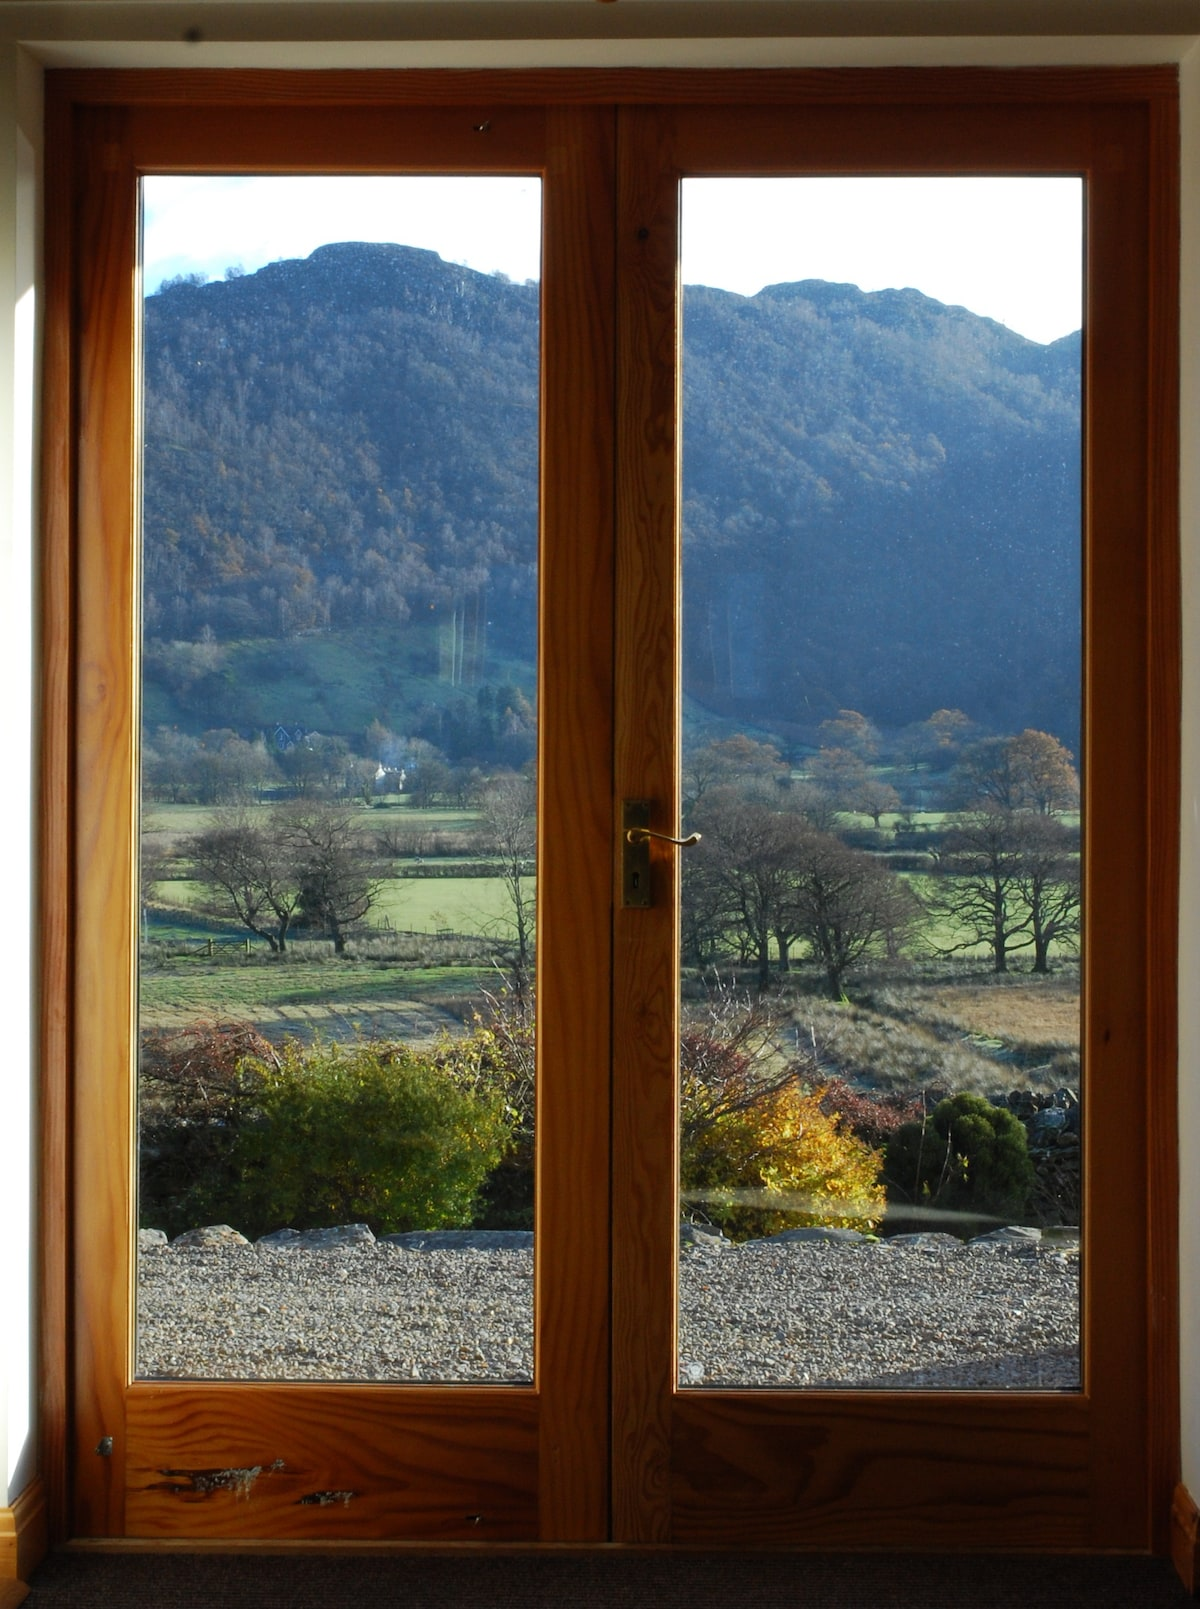 More of that great view from the French doors.